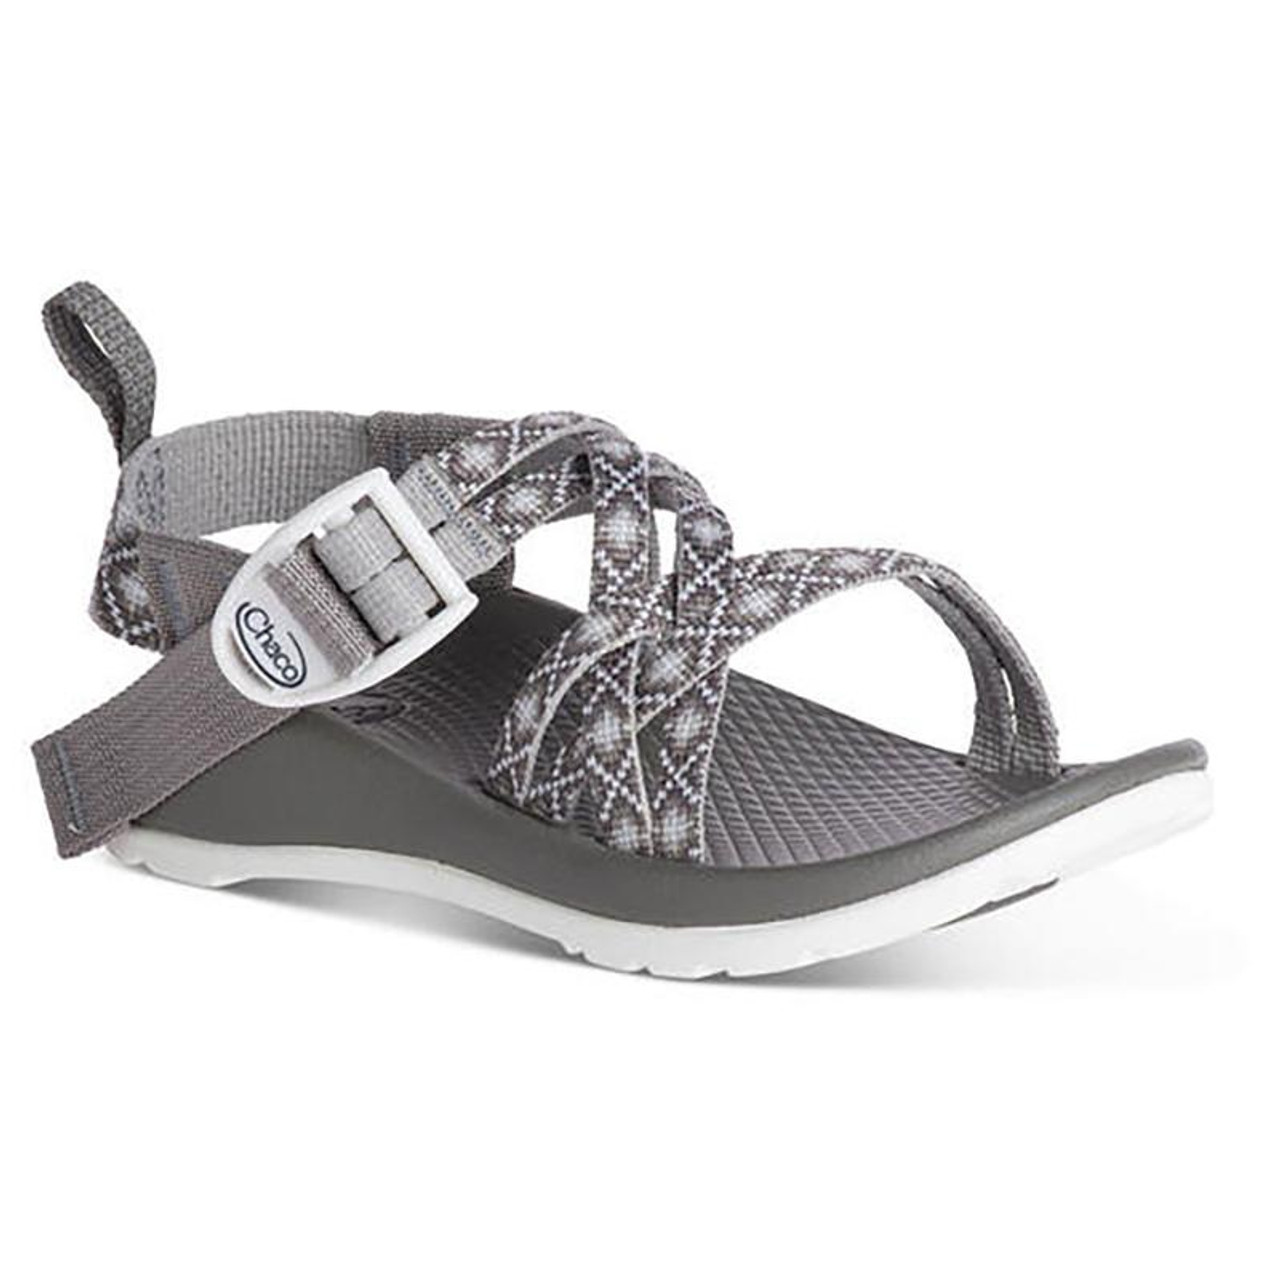 e2cba1d40395 Chaco Kid s Sandal - ZX 1 Kids - Diamond Grey - Surf and Dirt